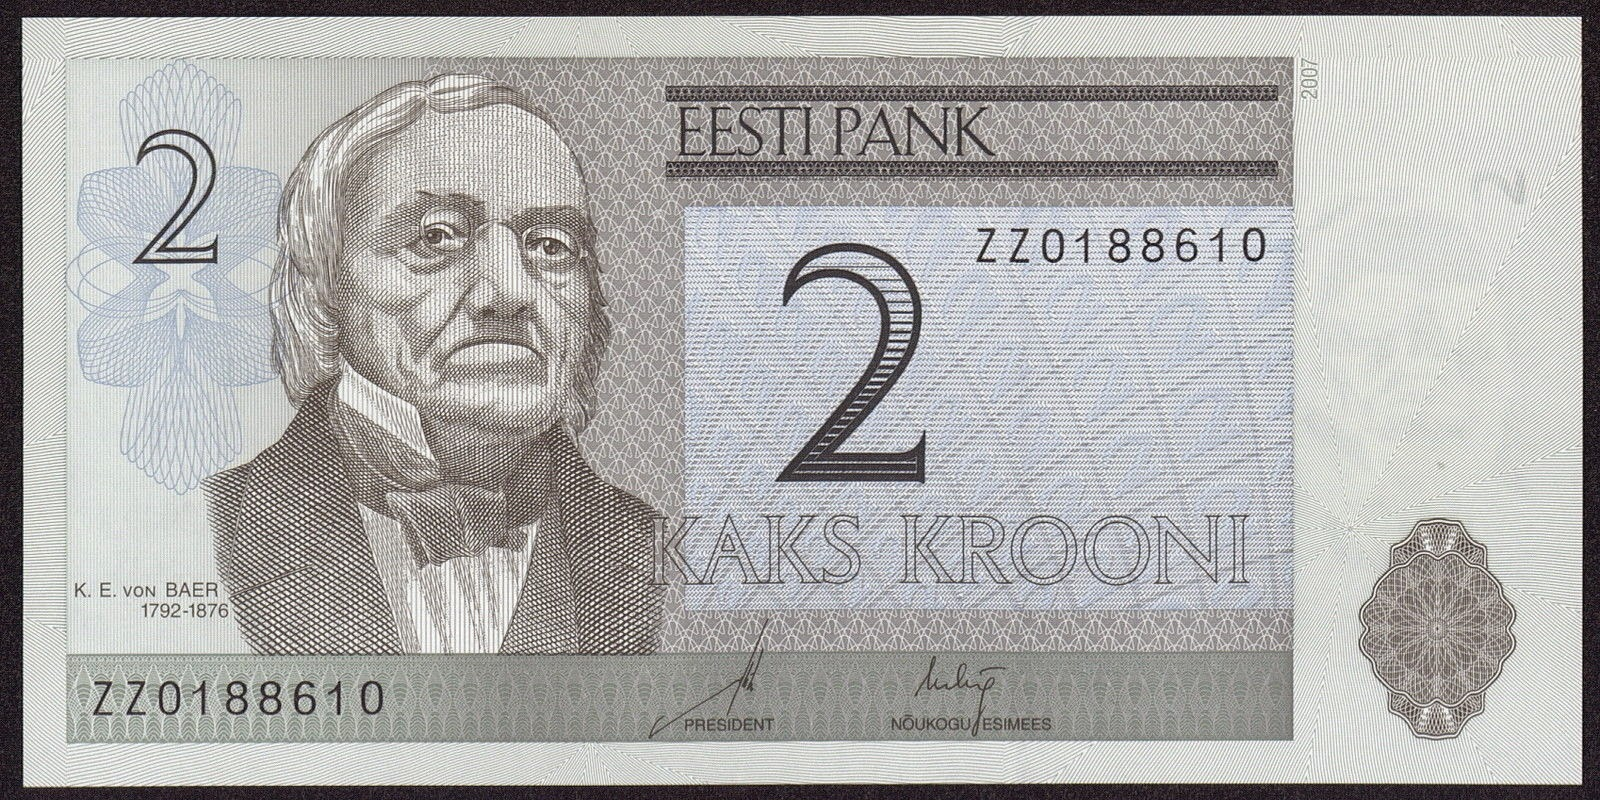 Estonia currency money 2 krooni banknote, Karl Ernst von Baer